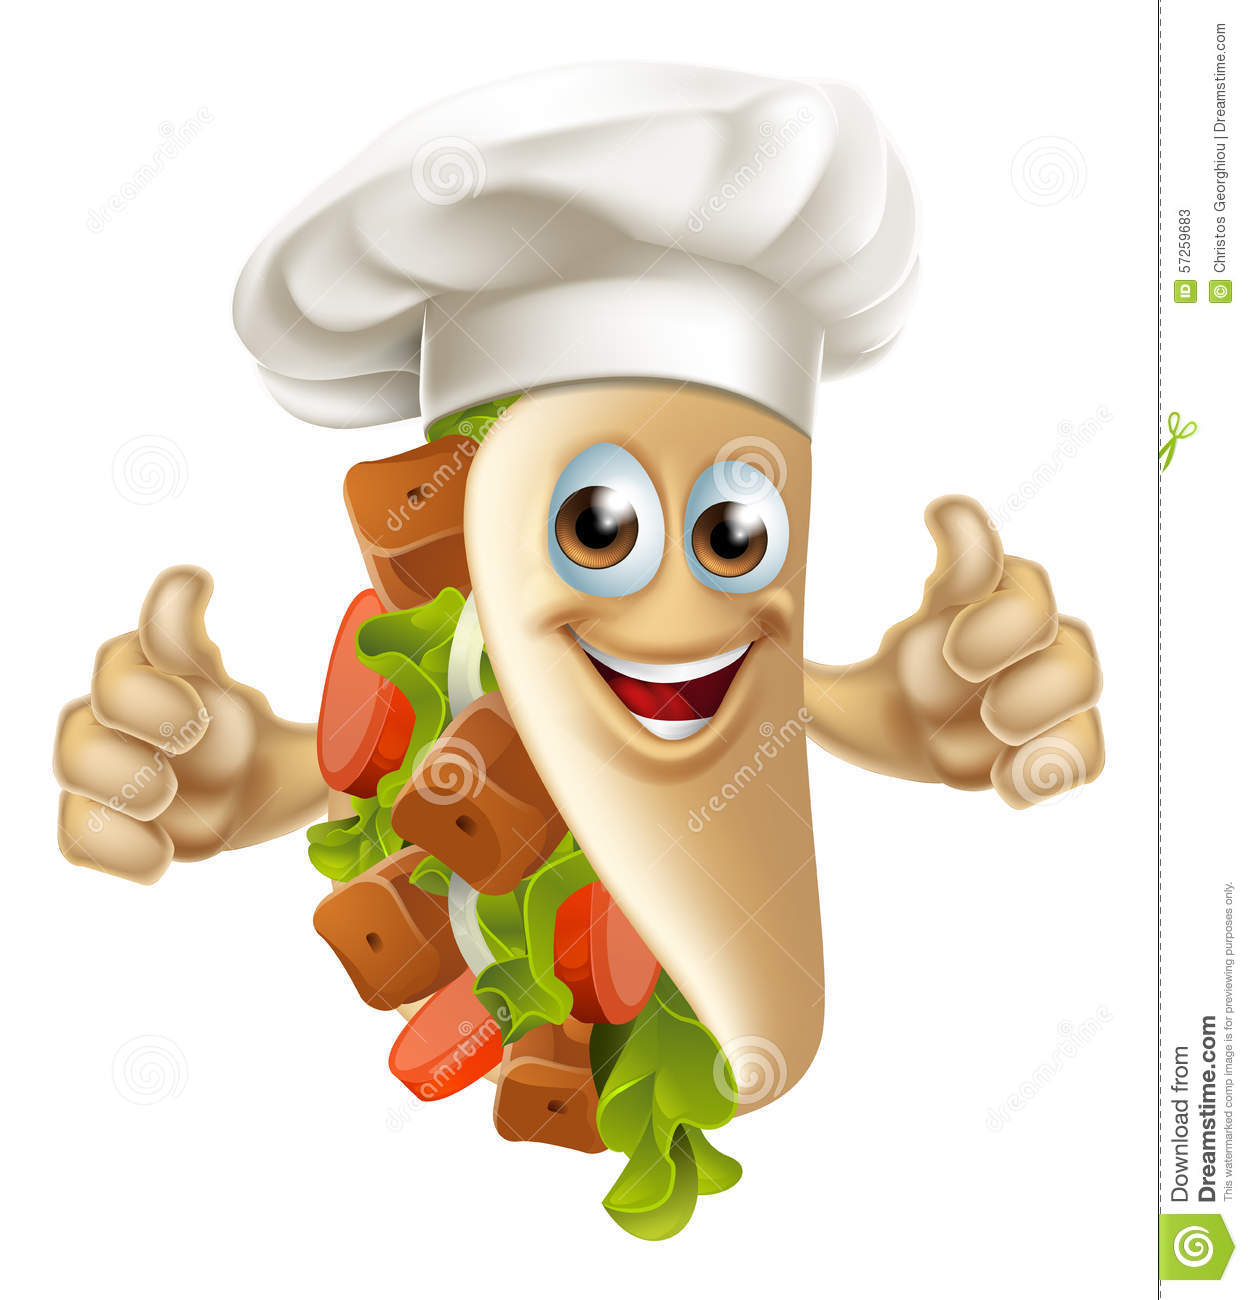 kebab chef man stock vector image 57259683 Listening Clip Art People Talking to Each Other